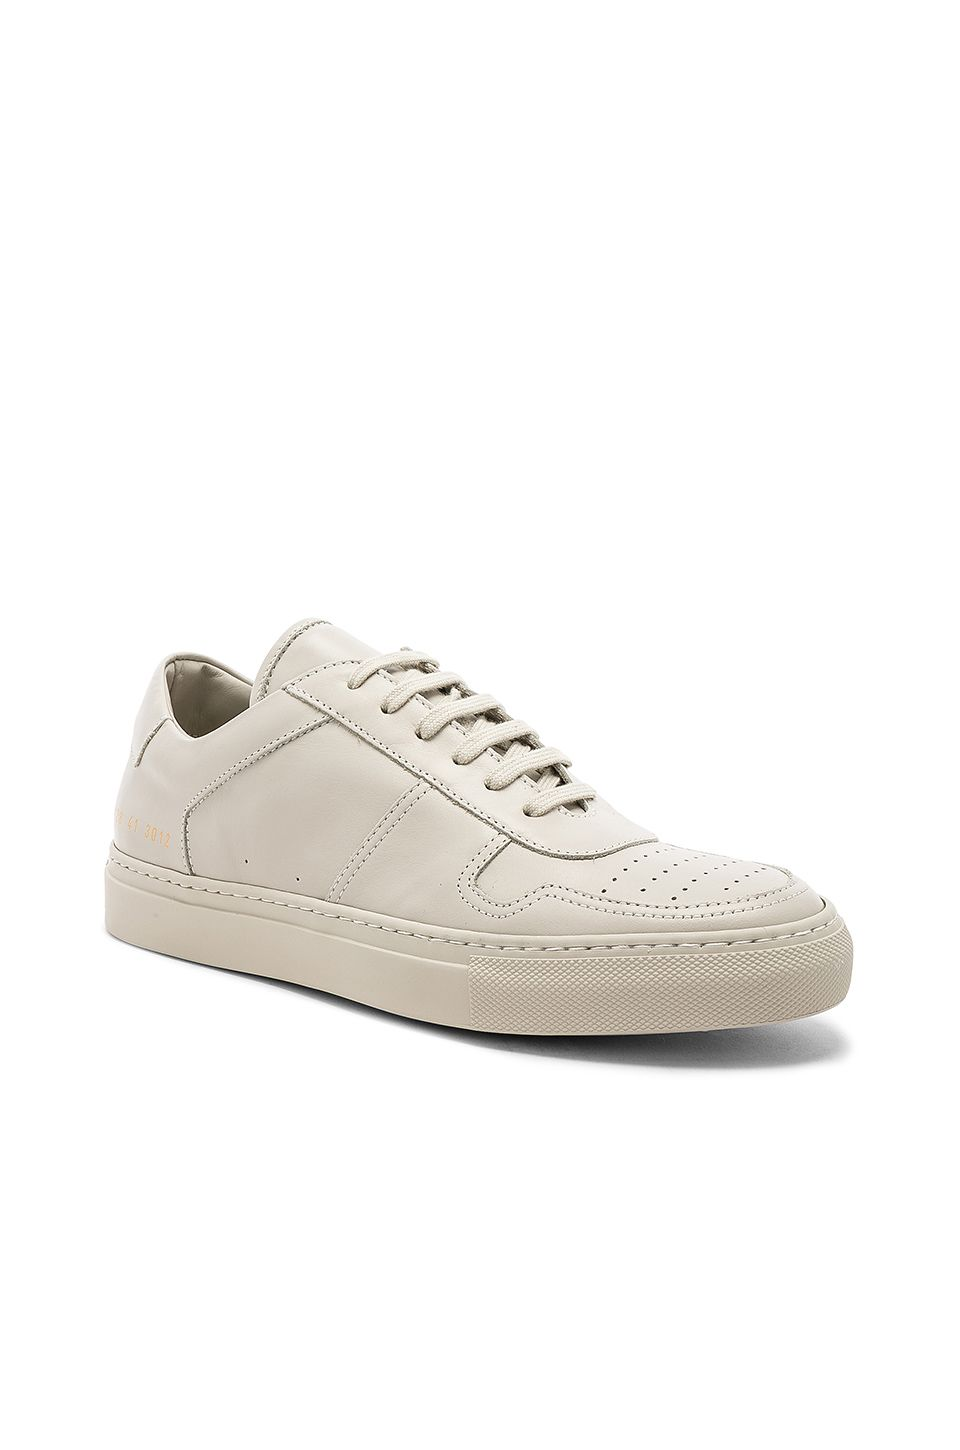 036aa8ded125 COMMON PROJECTS LEATHER BBALL LOW.  commonprojects  shoes